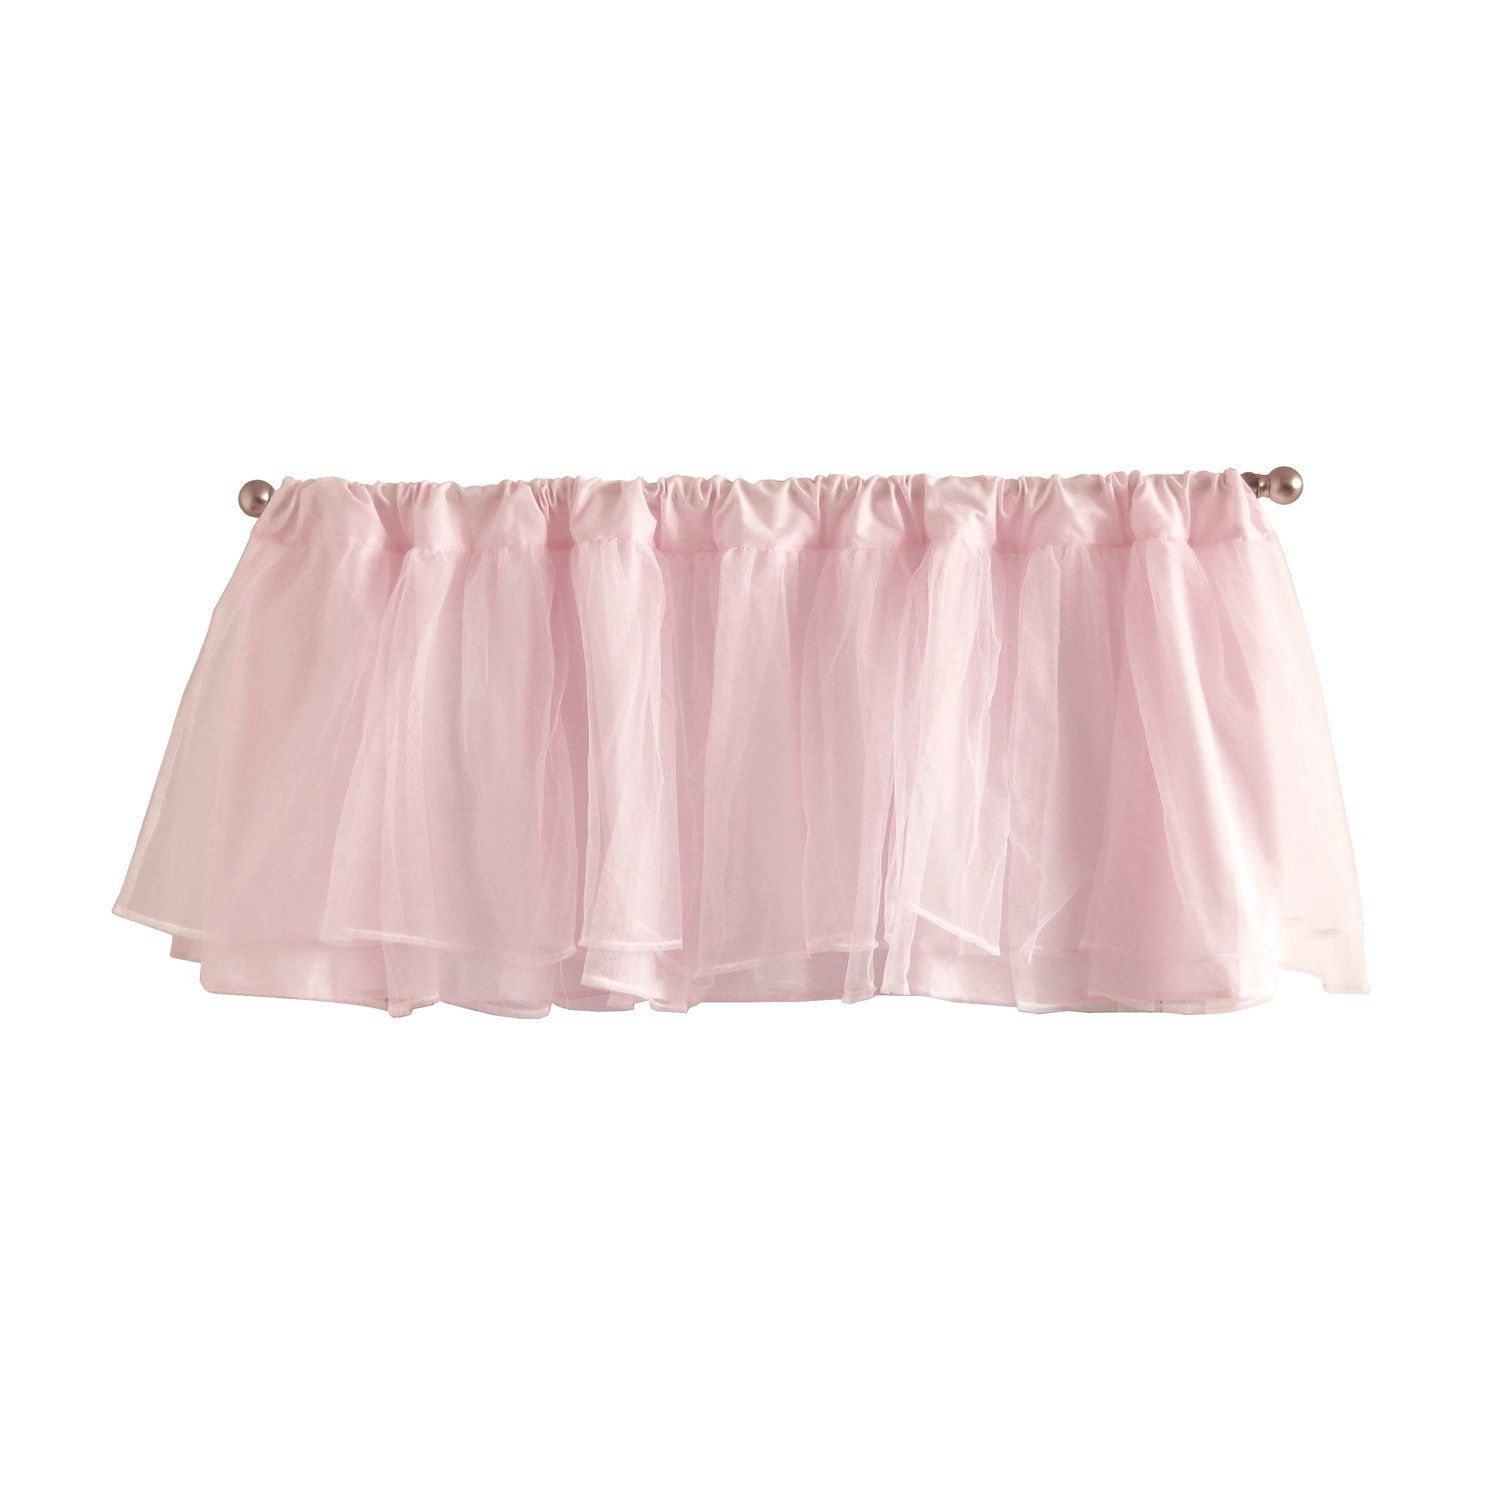 Tadpoles Dvlatl00 Layered Tulle Valance Nursery Window